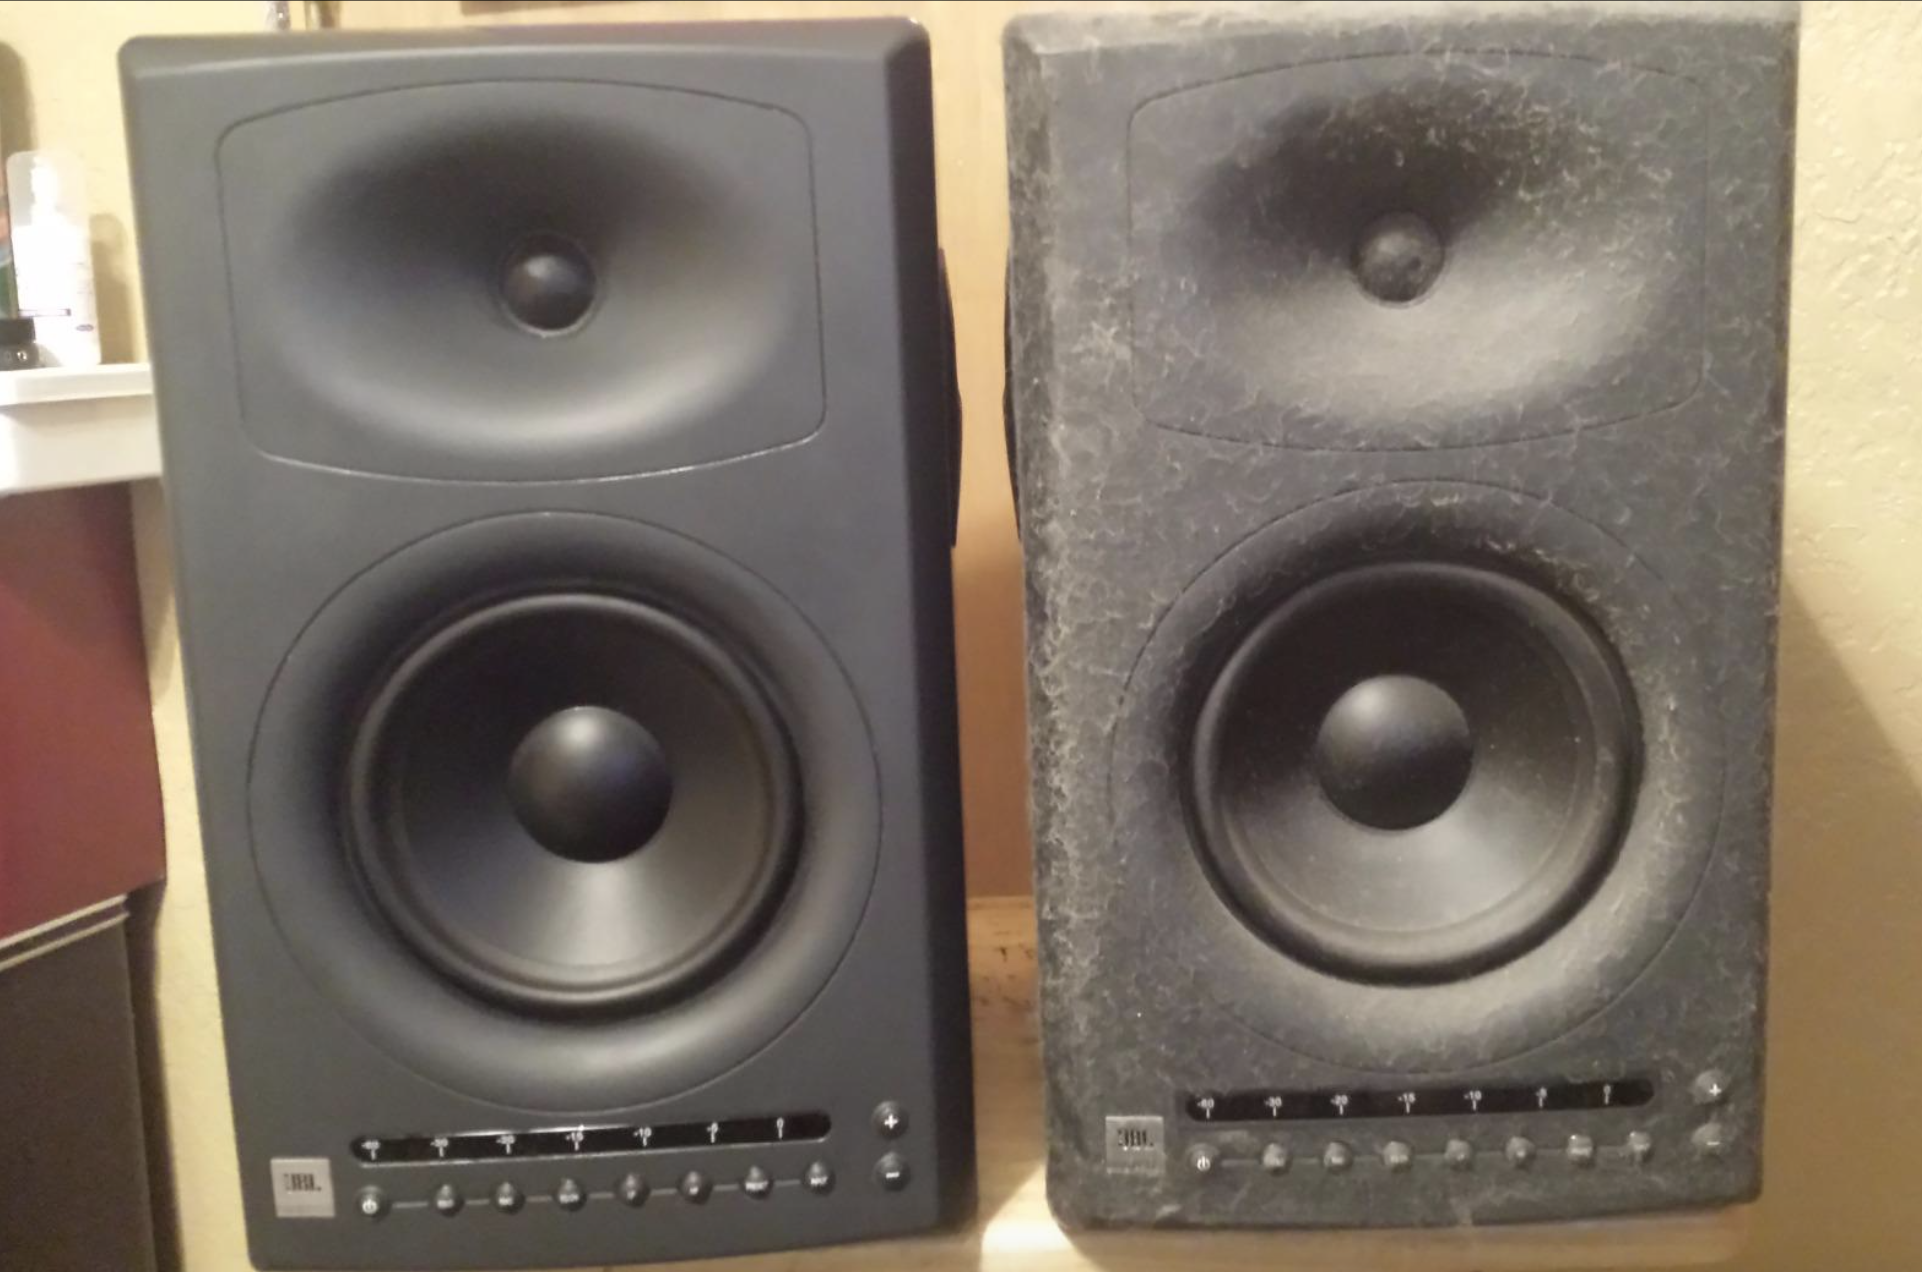 reviewer photo of speaker on left looking clean and speaker on right covered in adhesive